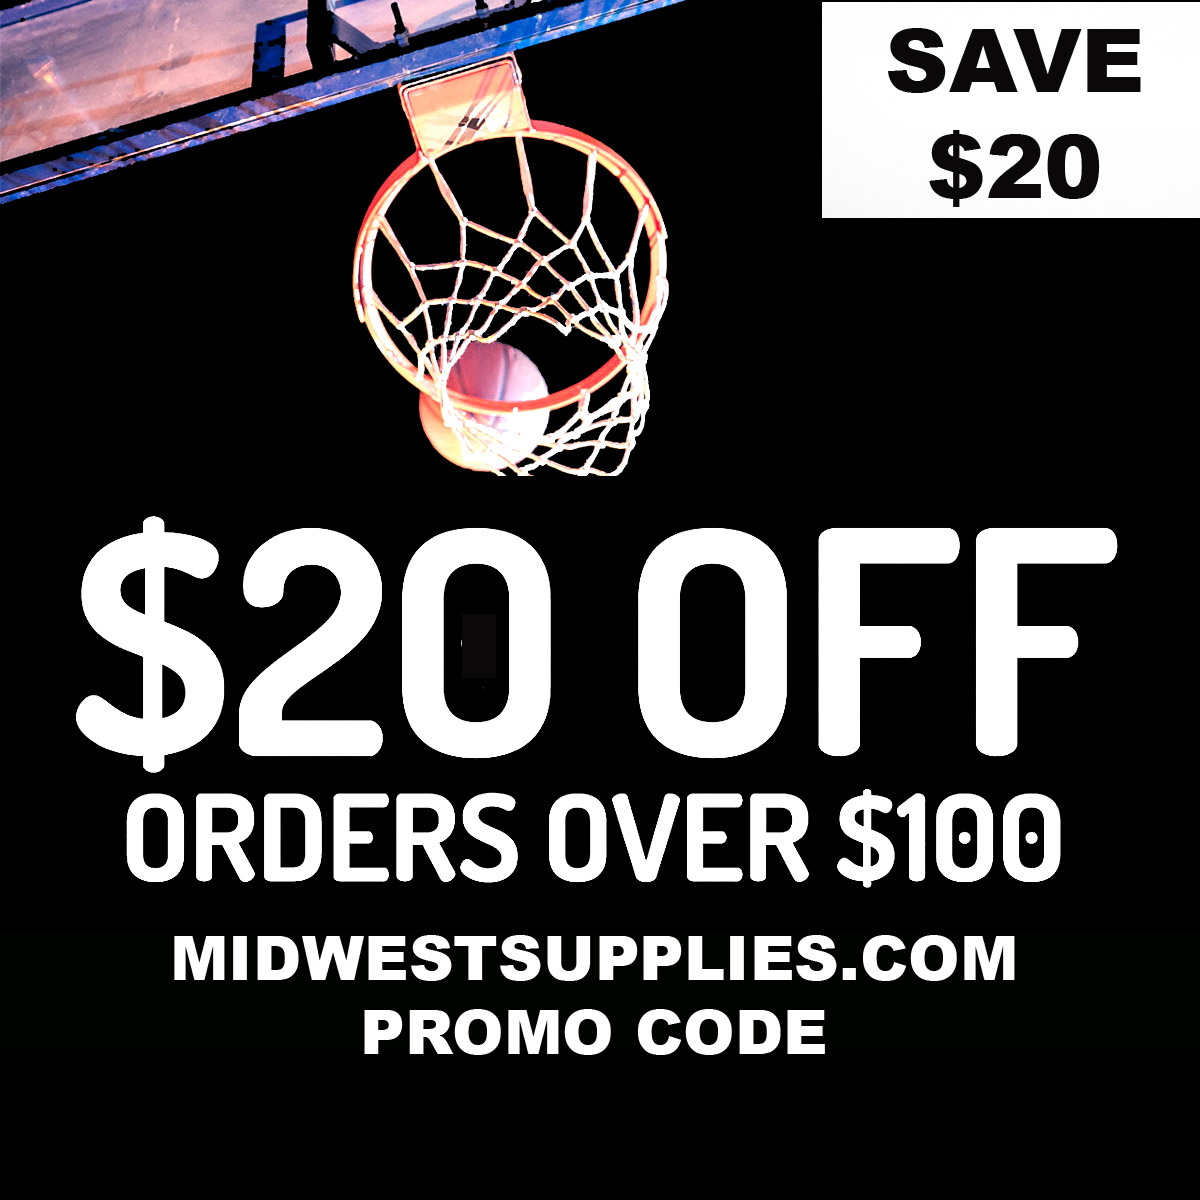 Midwest Supplies Save $20 On A $100 Order MidwestSupplies.com Promo Code Coupon Code